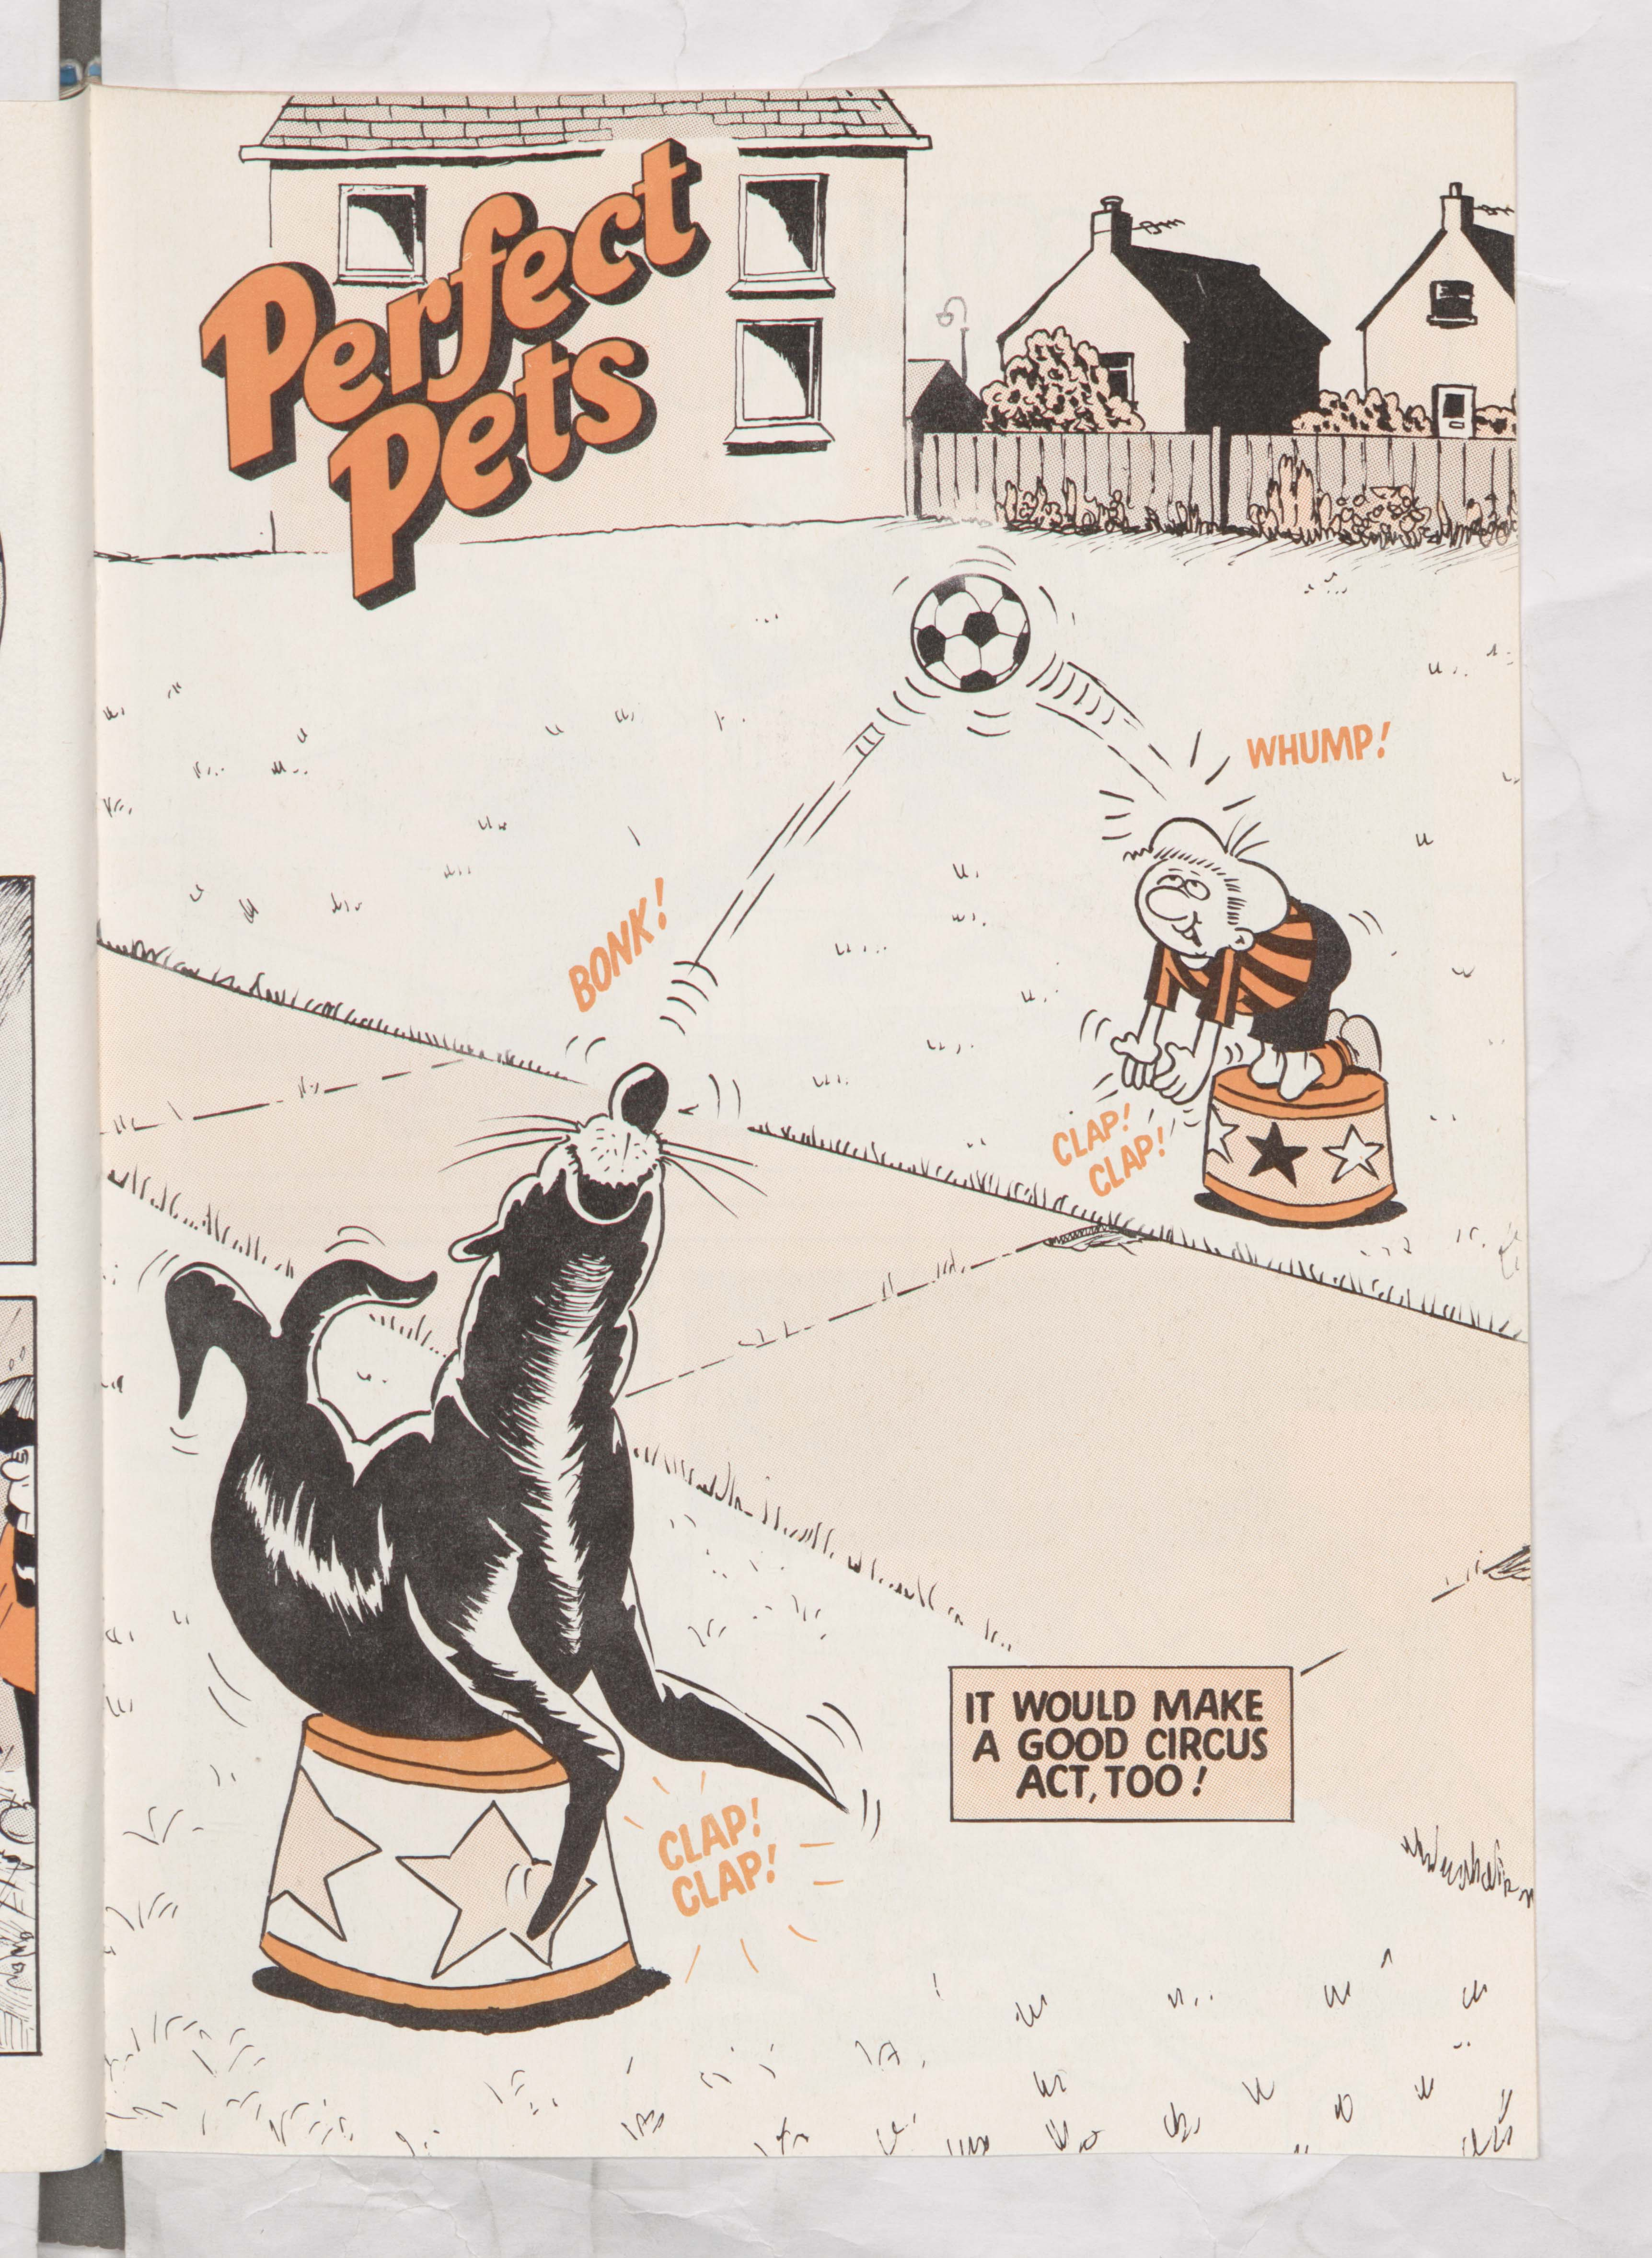 Perfect Pets - Ball Boy - Page 5 - Beano Annual 1979